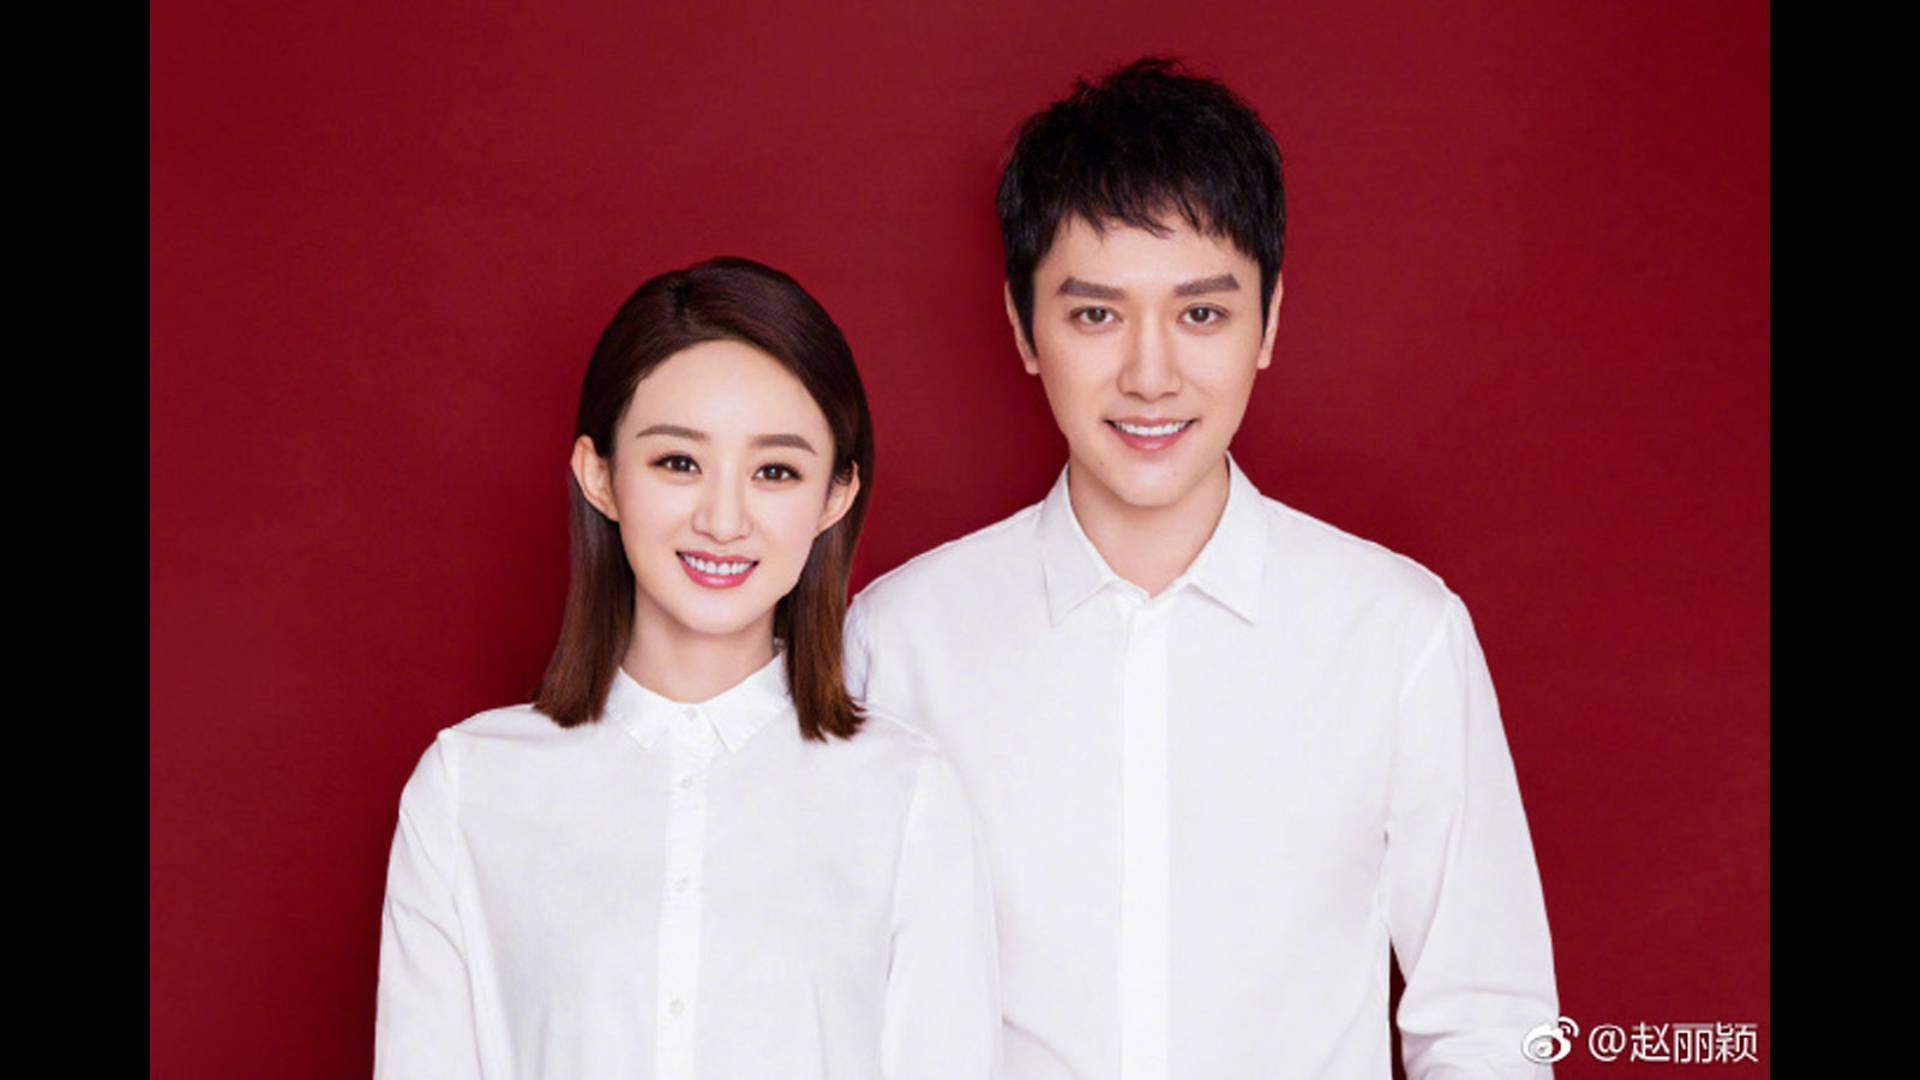 Zhao Liying and Feng Shaofeng splitting up